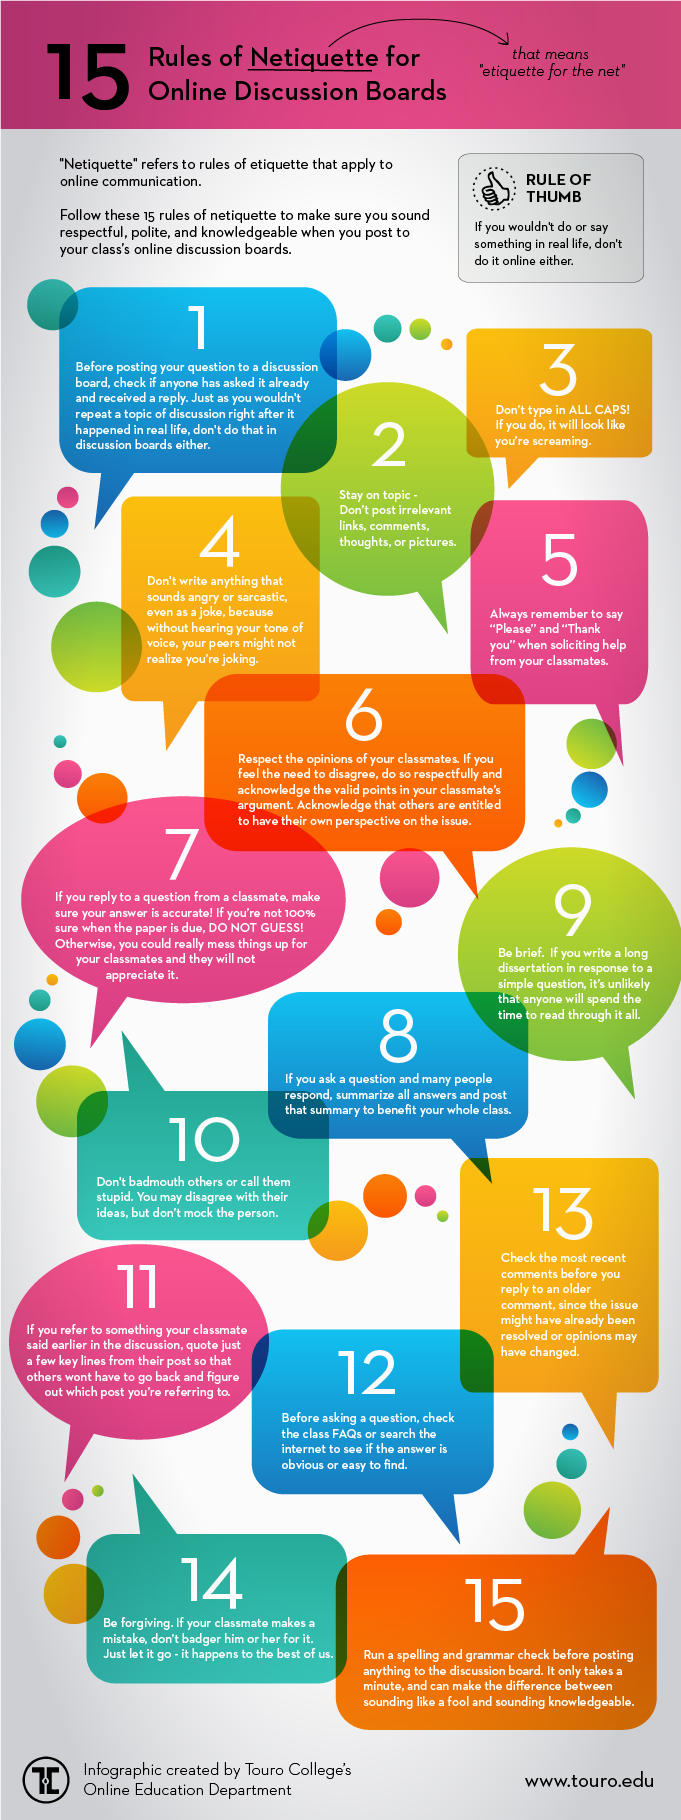 Awesome Poster Featuring 15 Online Netiquette Rules for Students ...